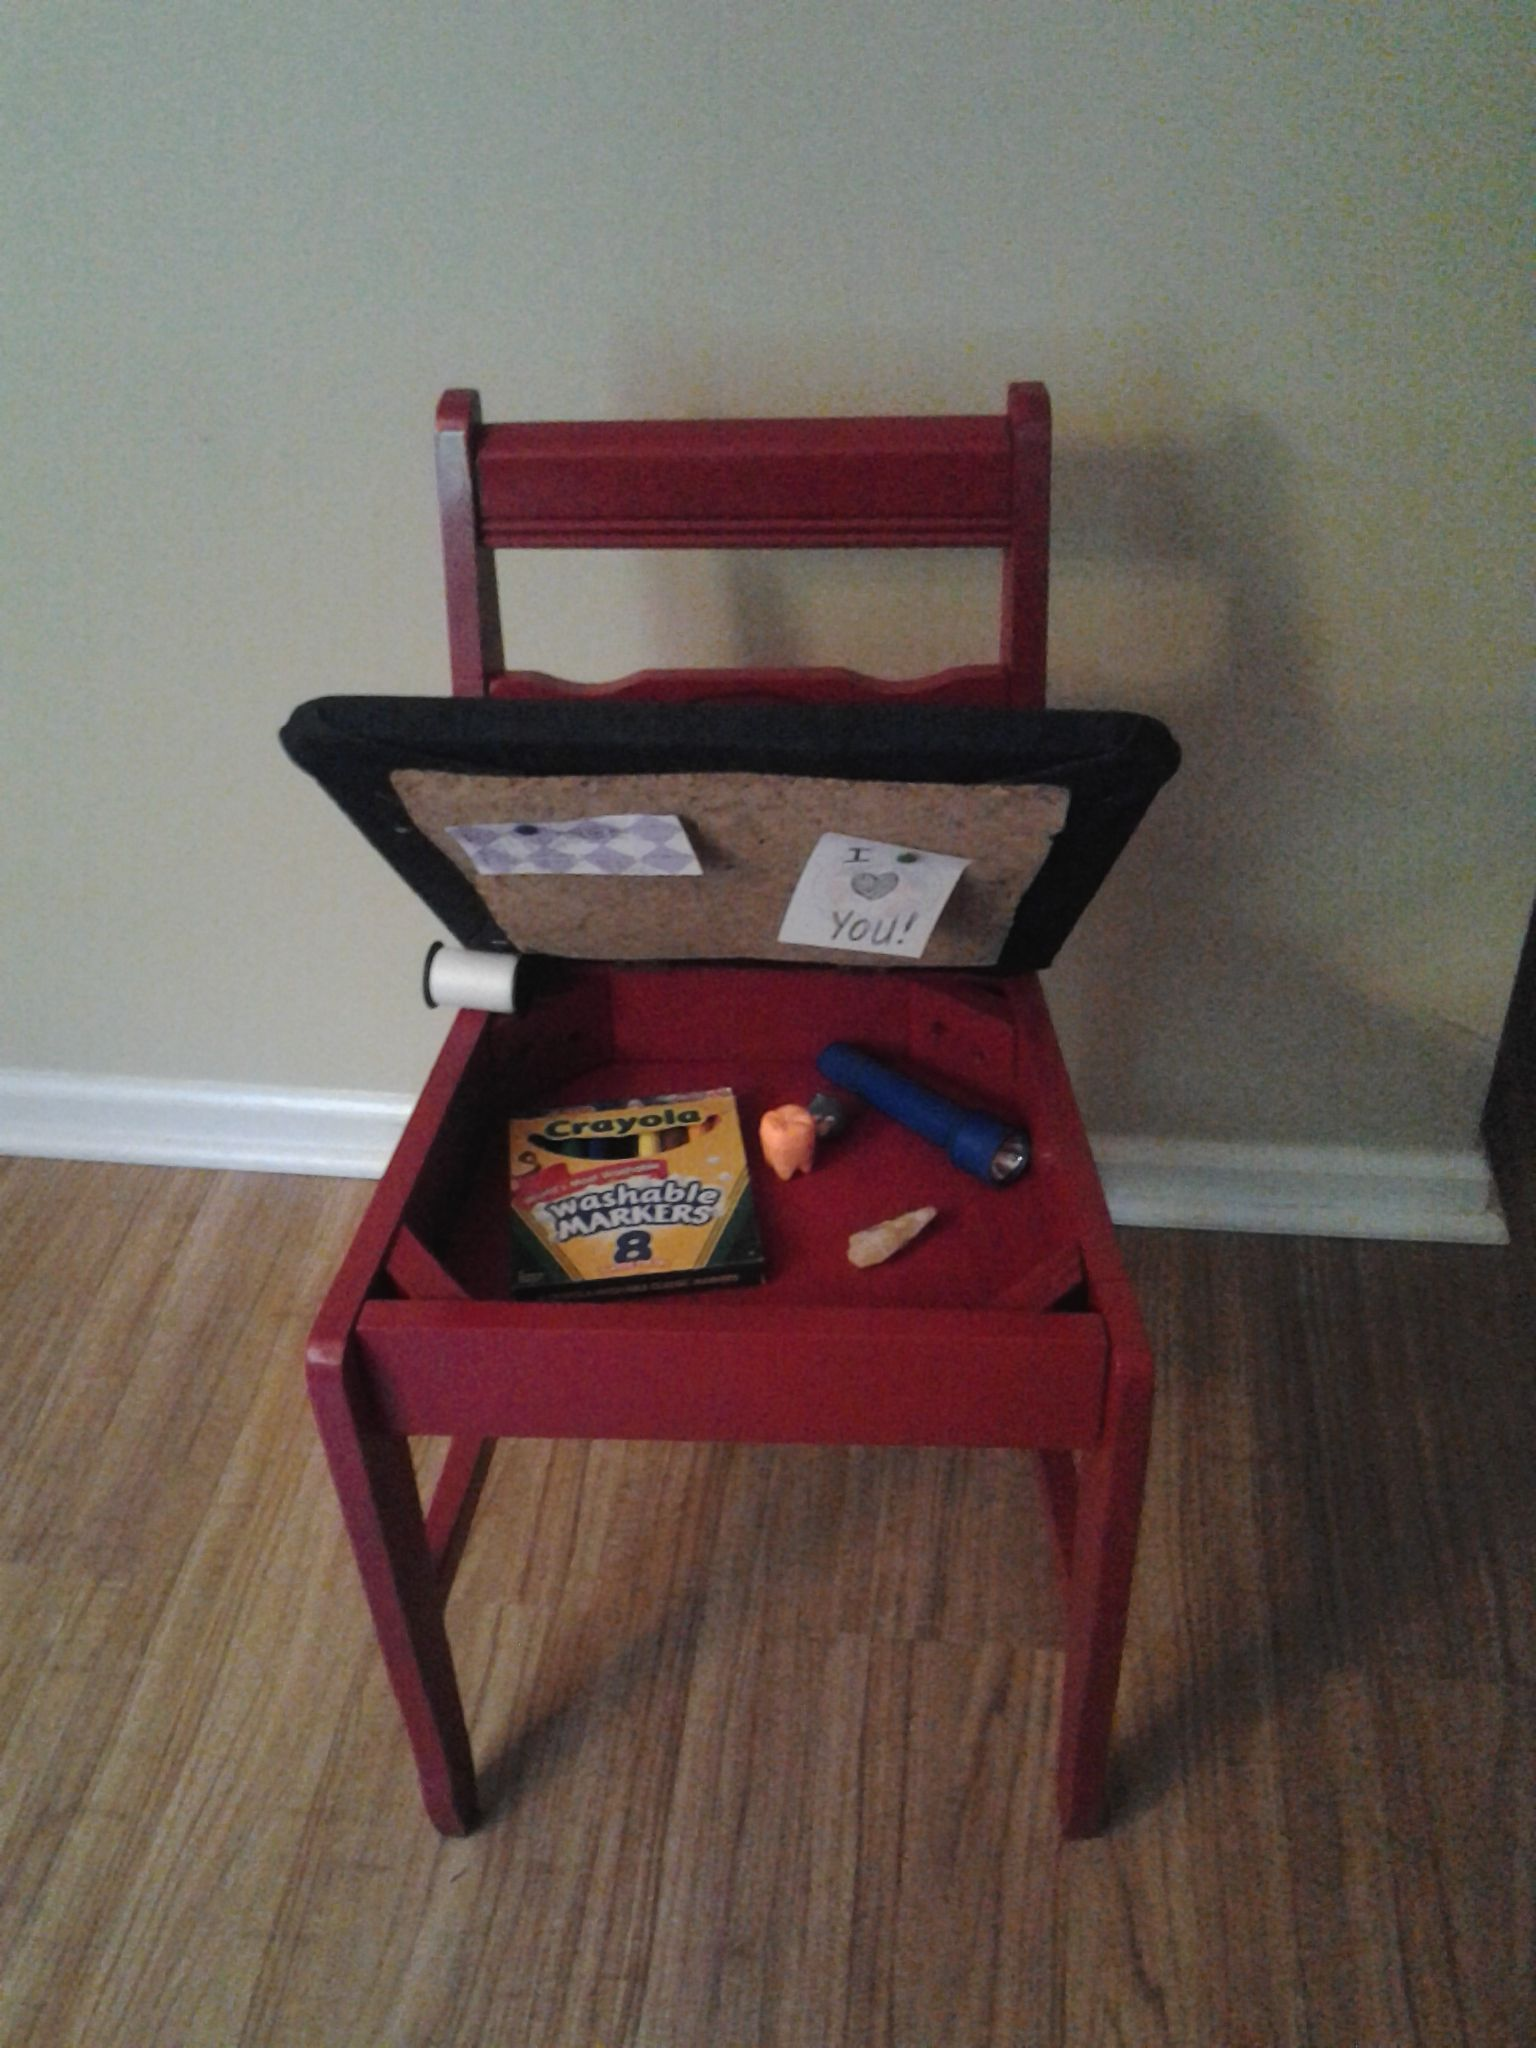 Cool Mod Chair With Hidden Compartment Under The Seat. Good Security Spot  For Valuables Before Taking A Trip. | Crafts | Pinterest | Fatale,  Rangement Et ...